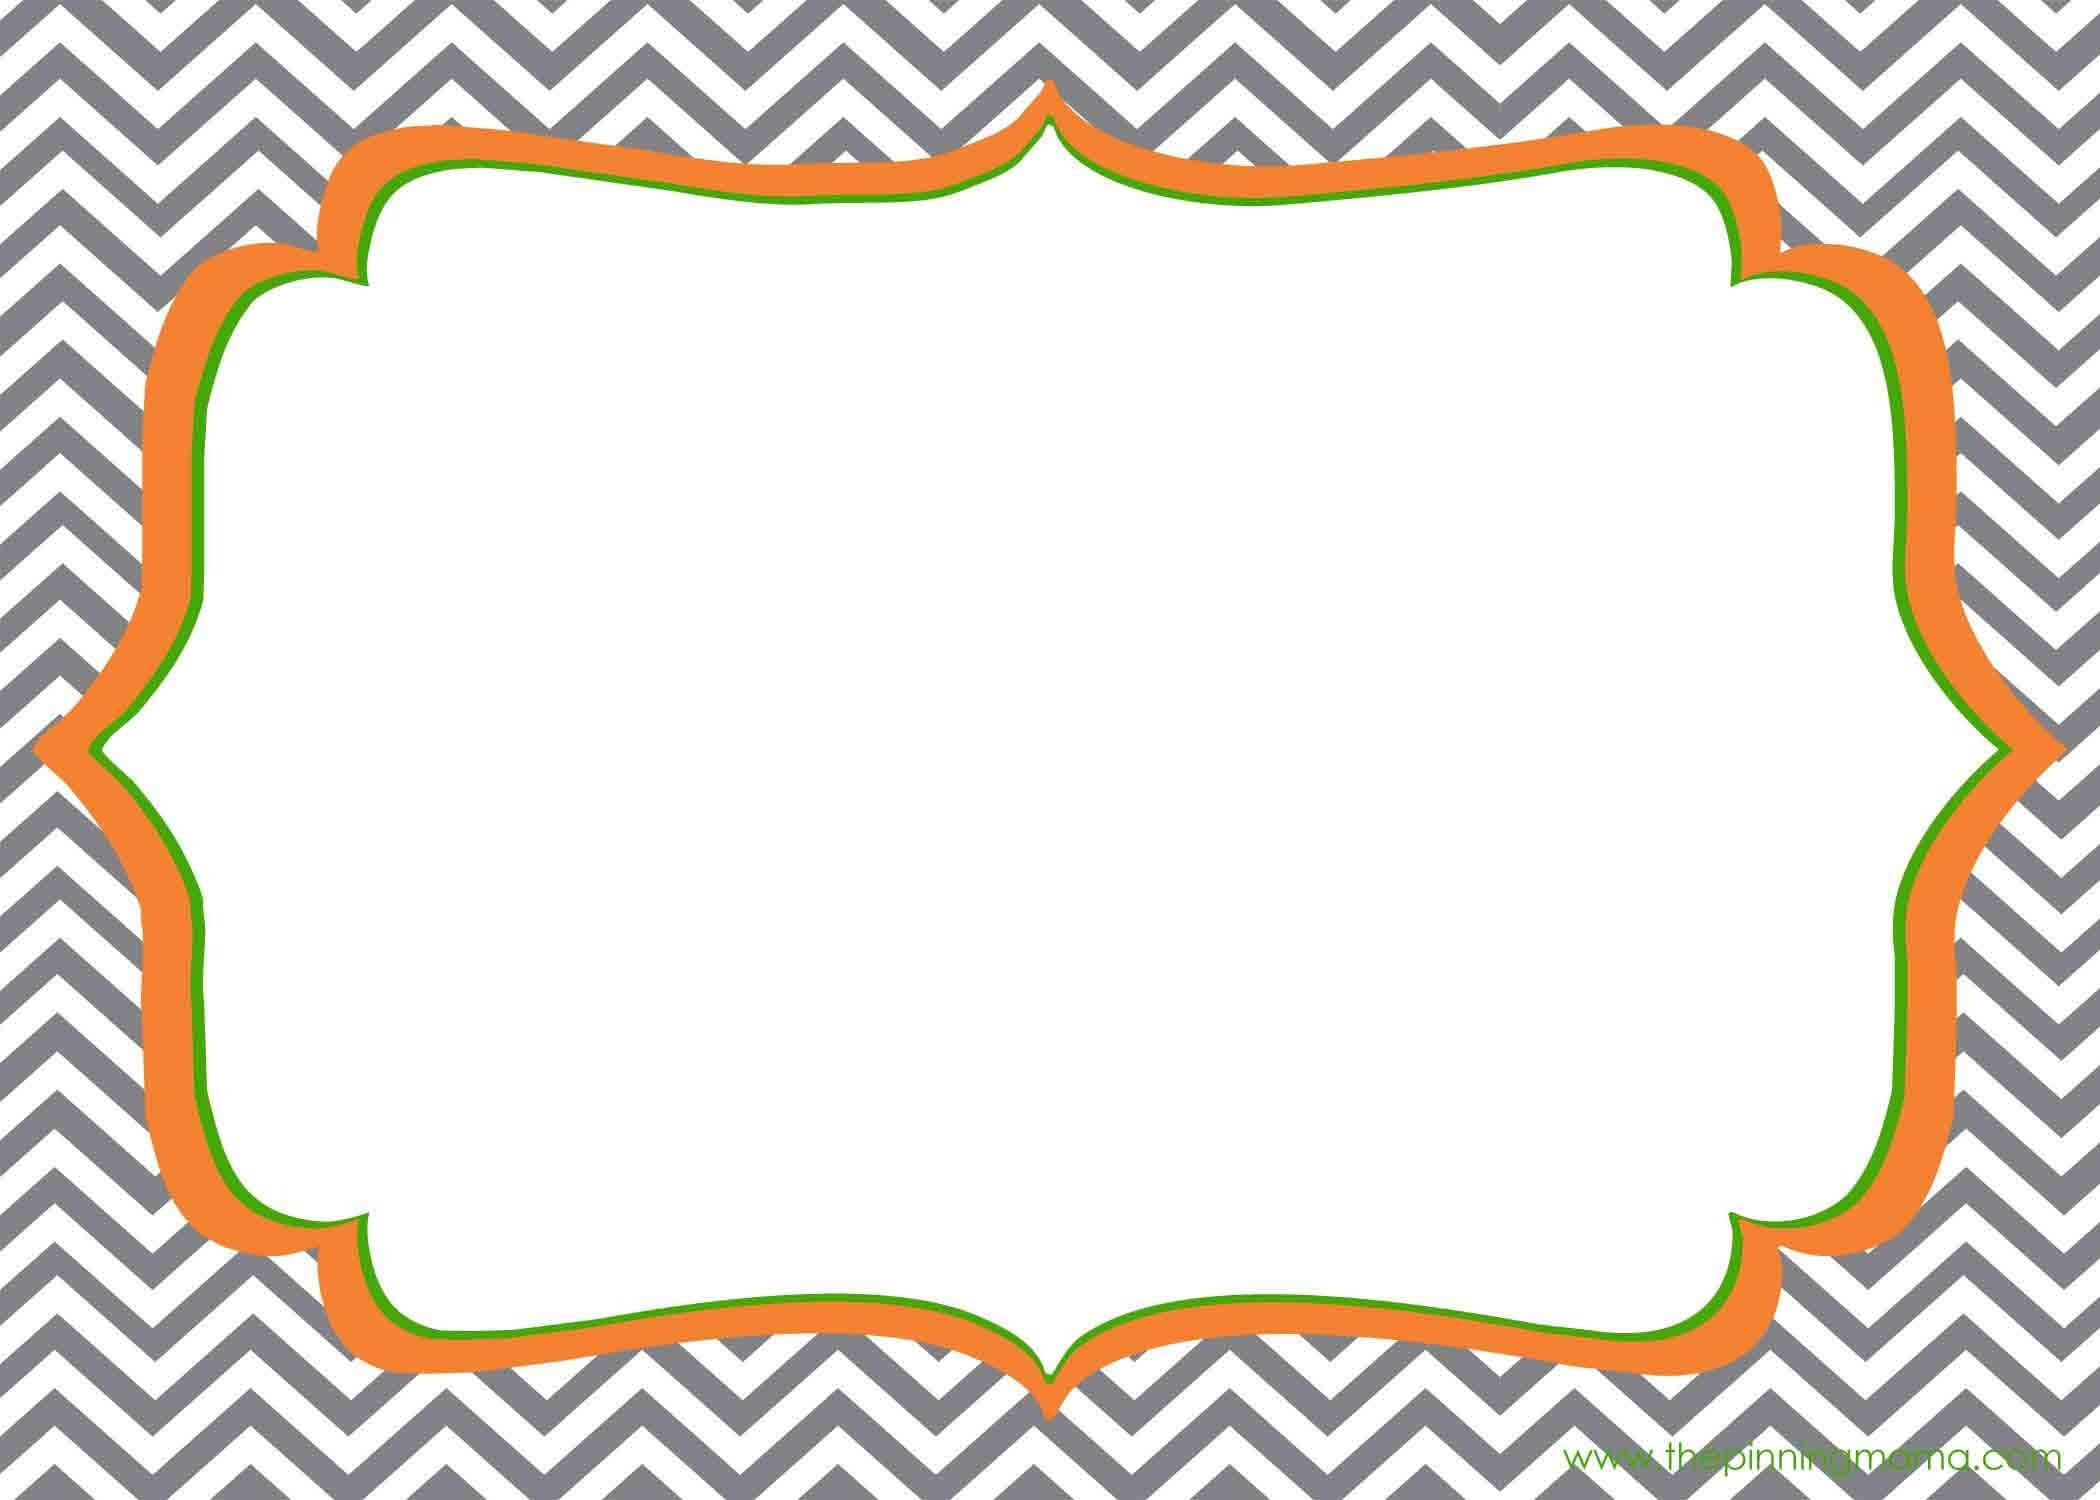 005 Free Printable Cards Templates Baby Photo Template With Regard To Template For Cards To Print Free